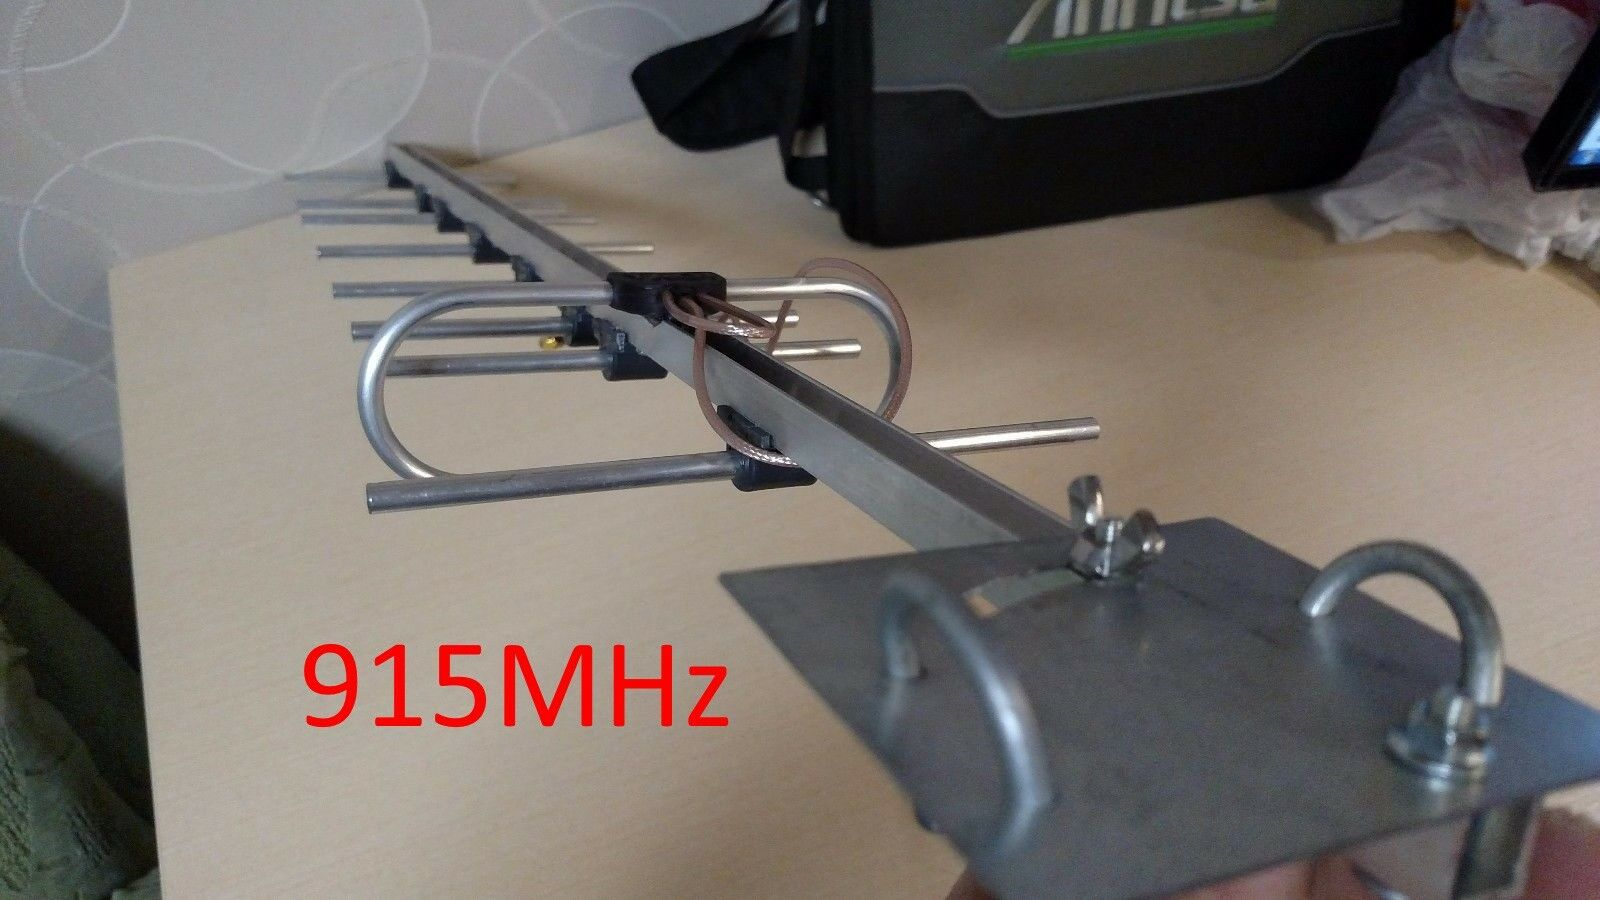 Antenna  915MHz Yagi  individual tuned for LRS telemetry RFD  disponibile